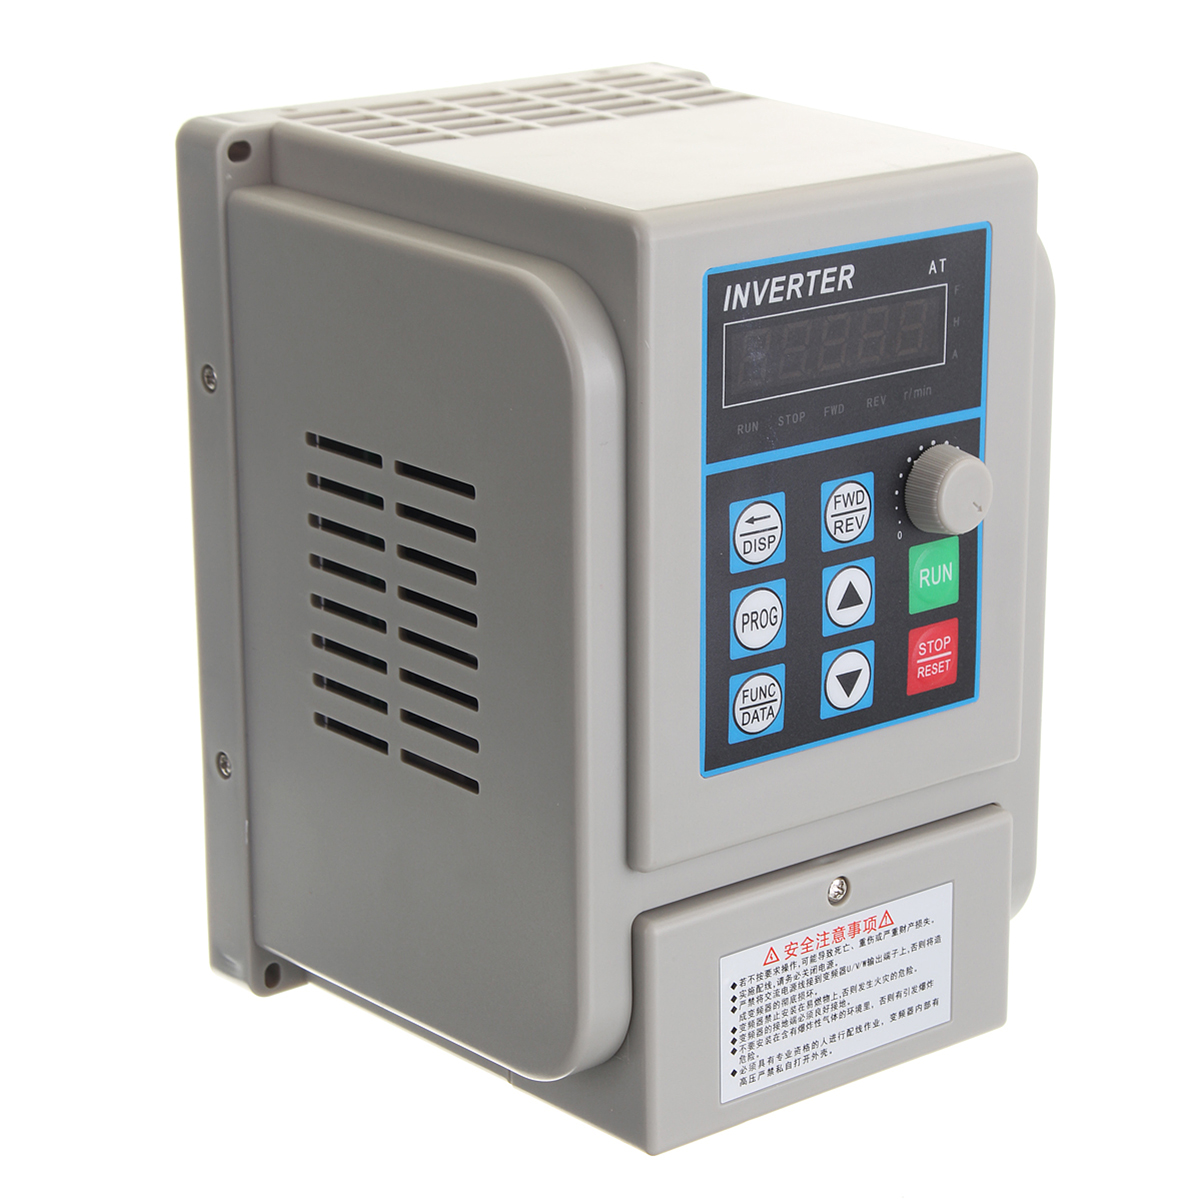 2.2kw 220V Single Phase Input Three Phase Out Inverter Variable Frequency Inverter PWM Control